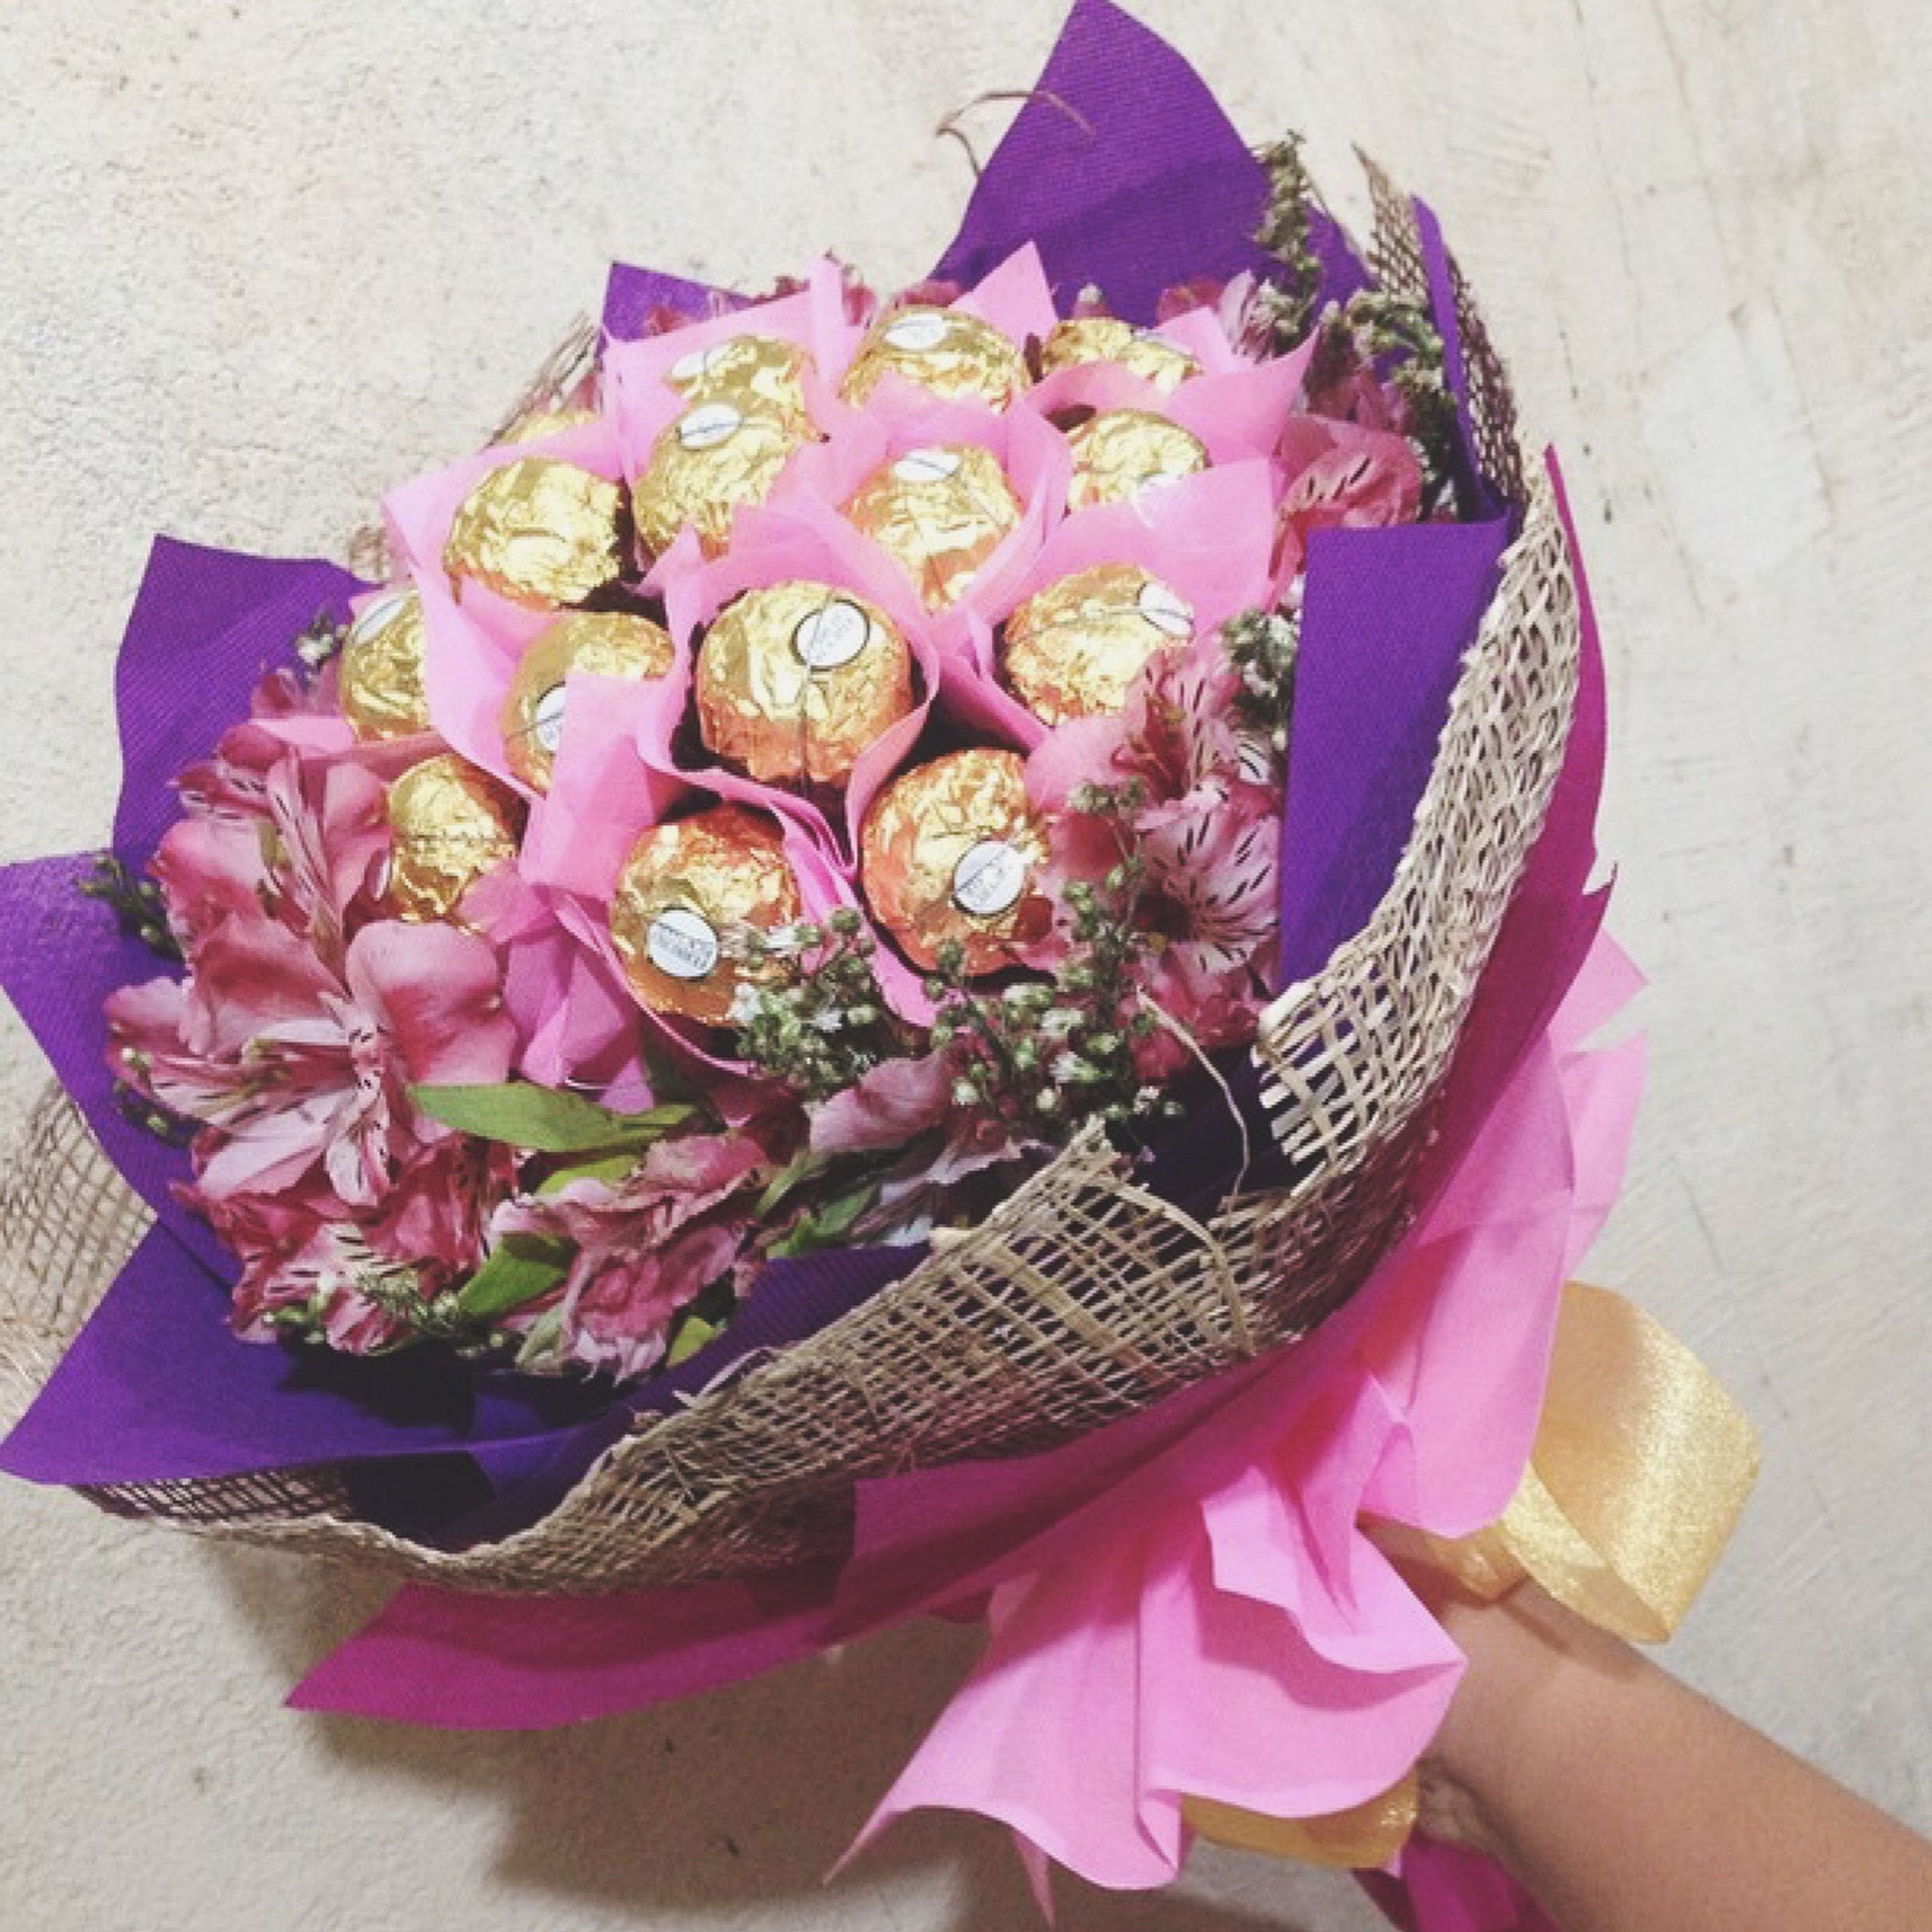 flower, indoors, pink color, bouquet, multi colored, petal, freshness, high angle view, fragility, decoration, wall - building feature, floral pattern, flower head, close-up, holding, fabric, art and craft, person